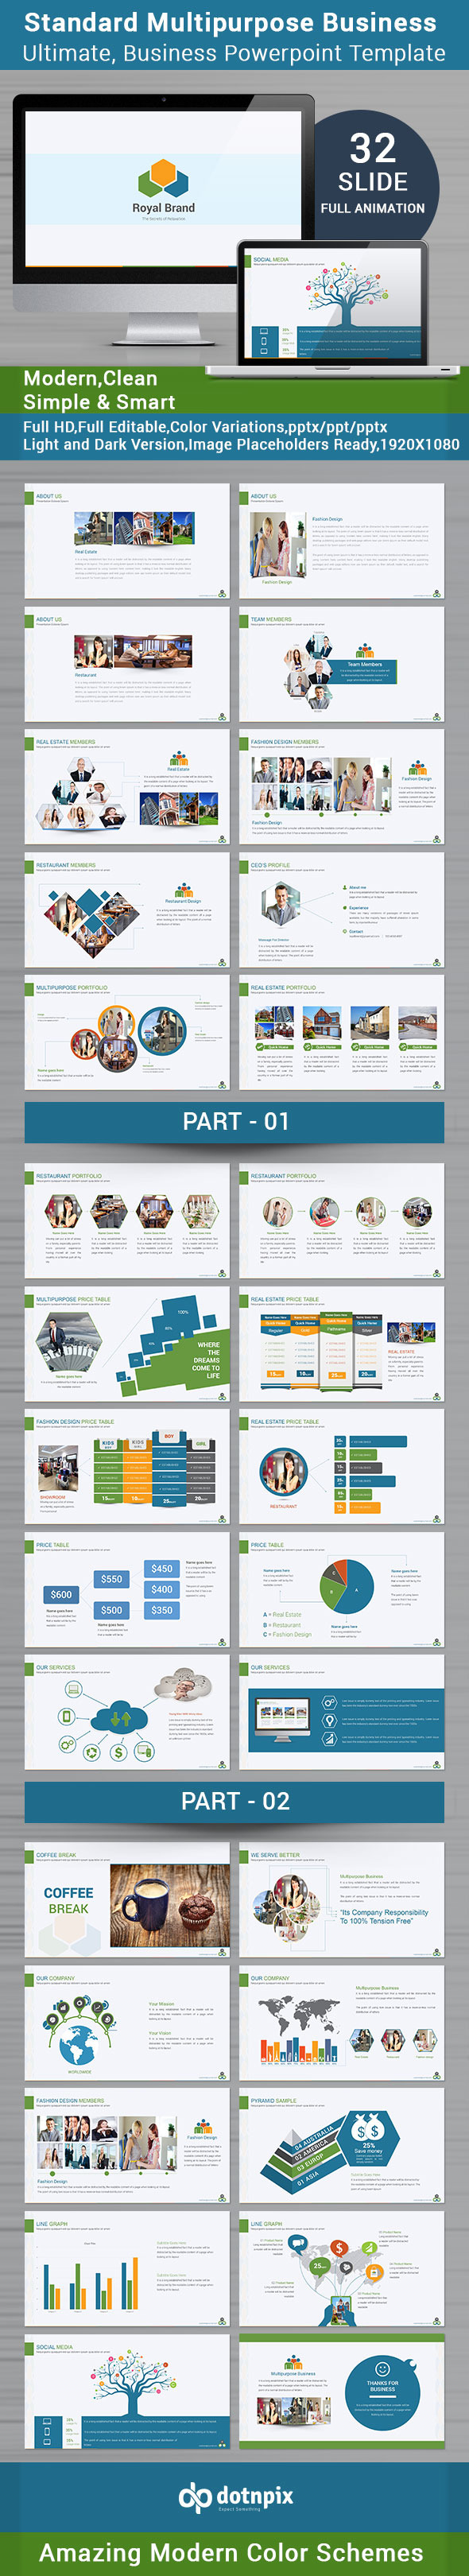 Standard Multipurpose Business Powerpoint Template (PowerPoint Templates)